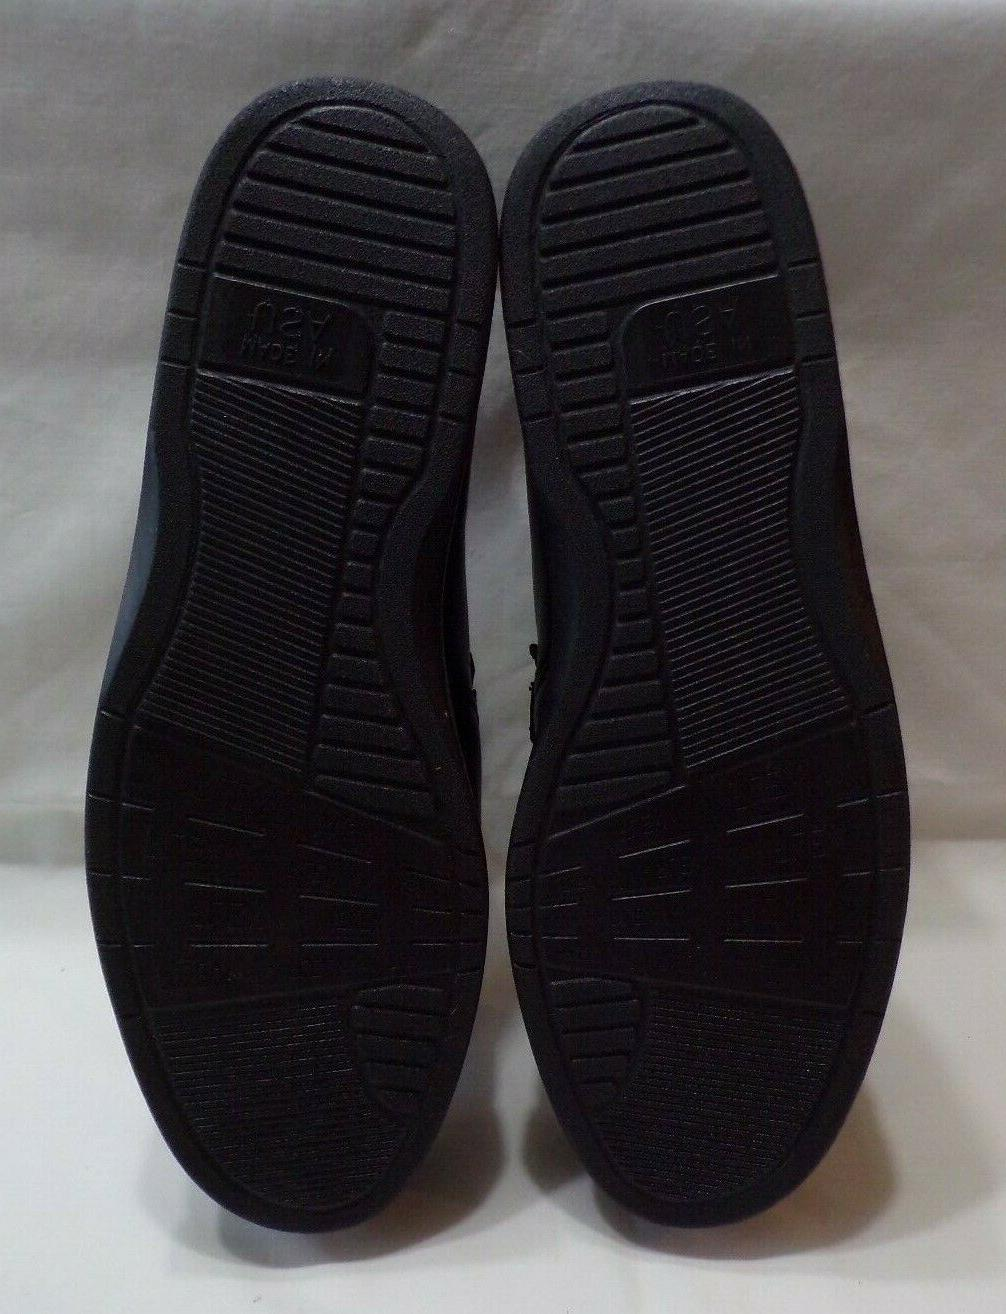 Iron Safety Toe 705 8 1/2 in